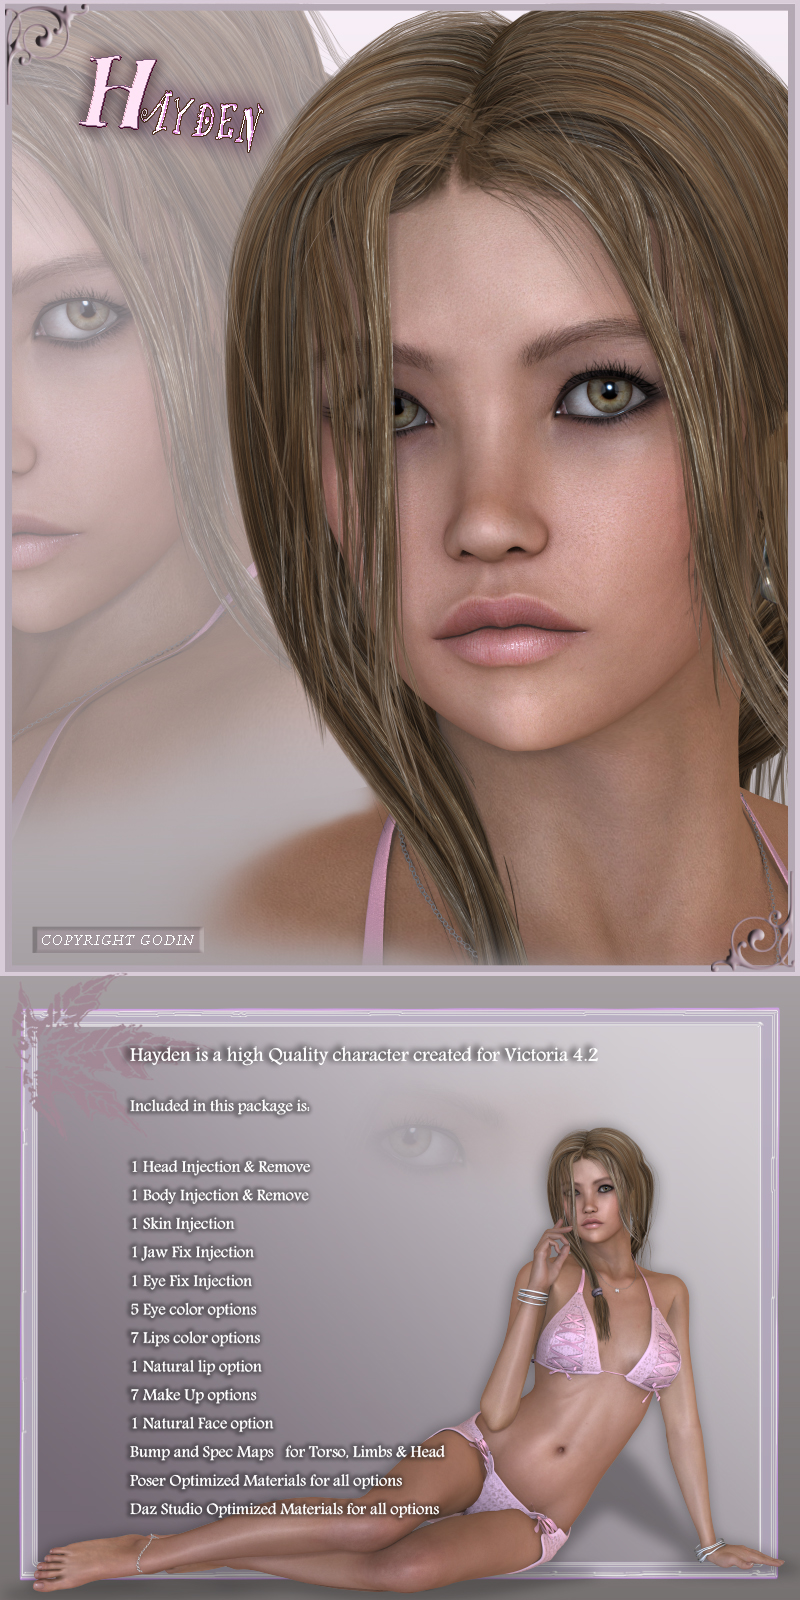 VH Hayden for Victoria 4.2